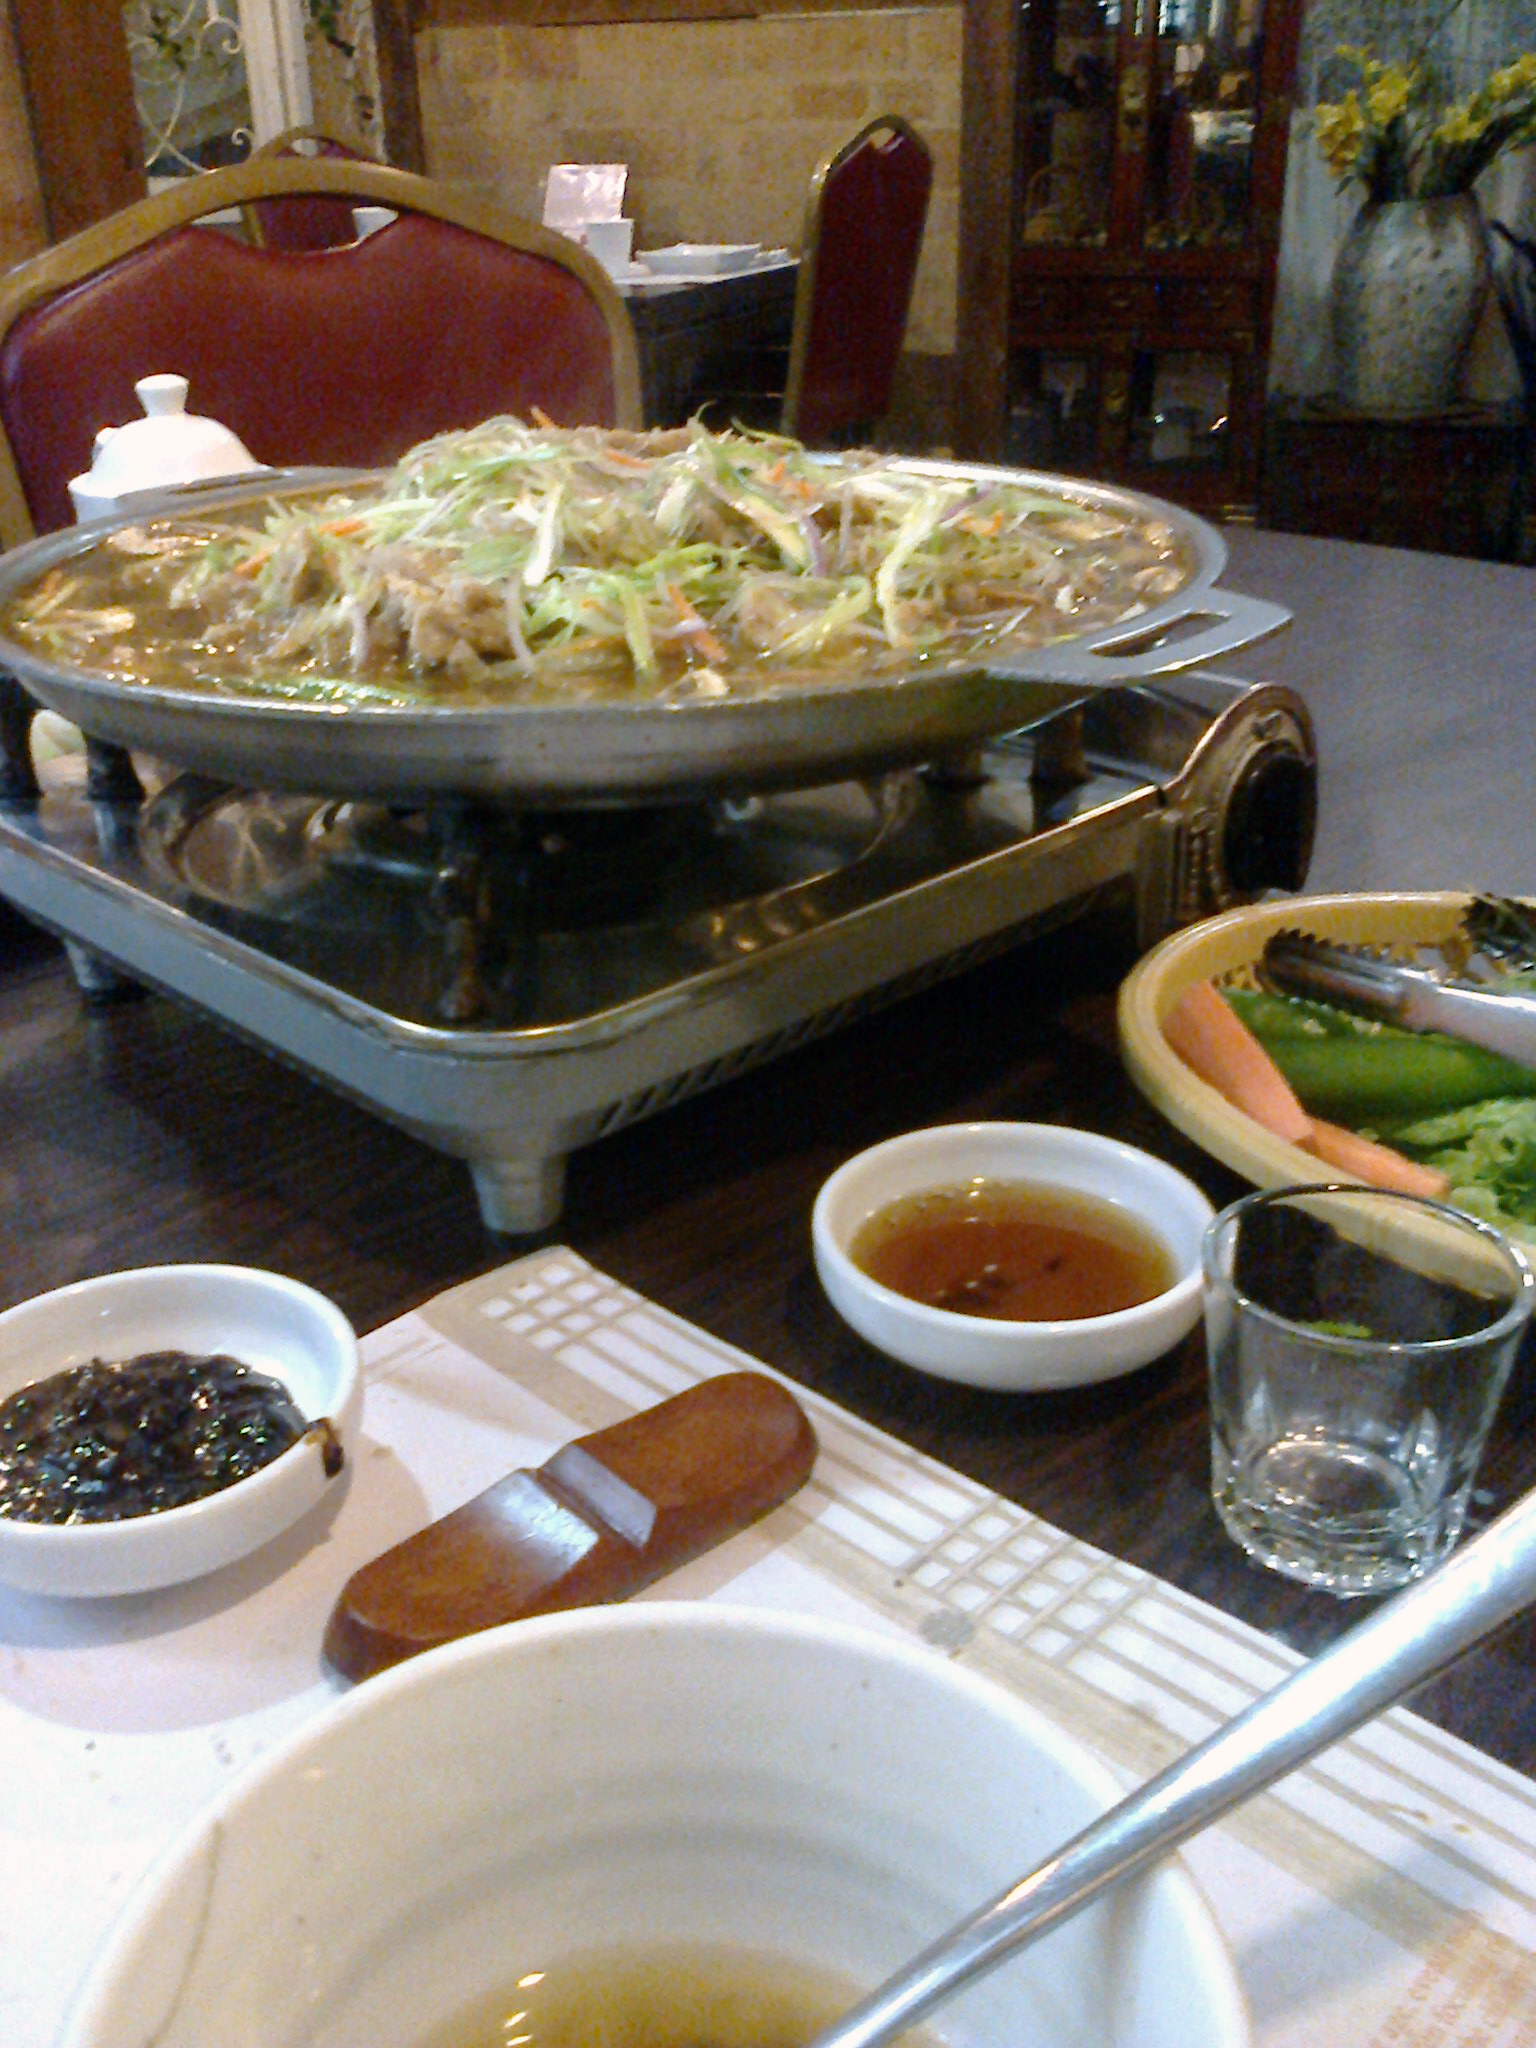 Gung The Palace - Enormous quantities of food